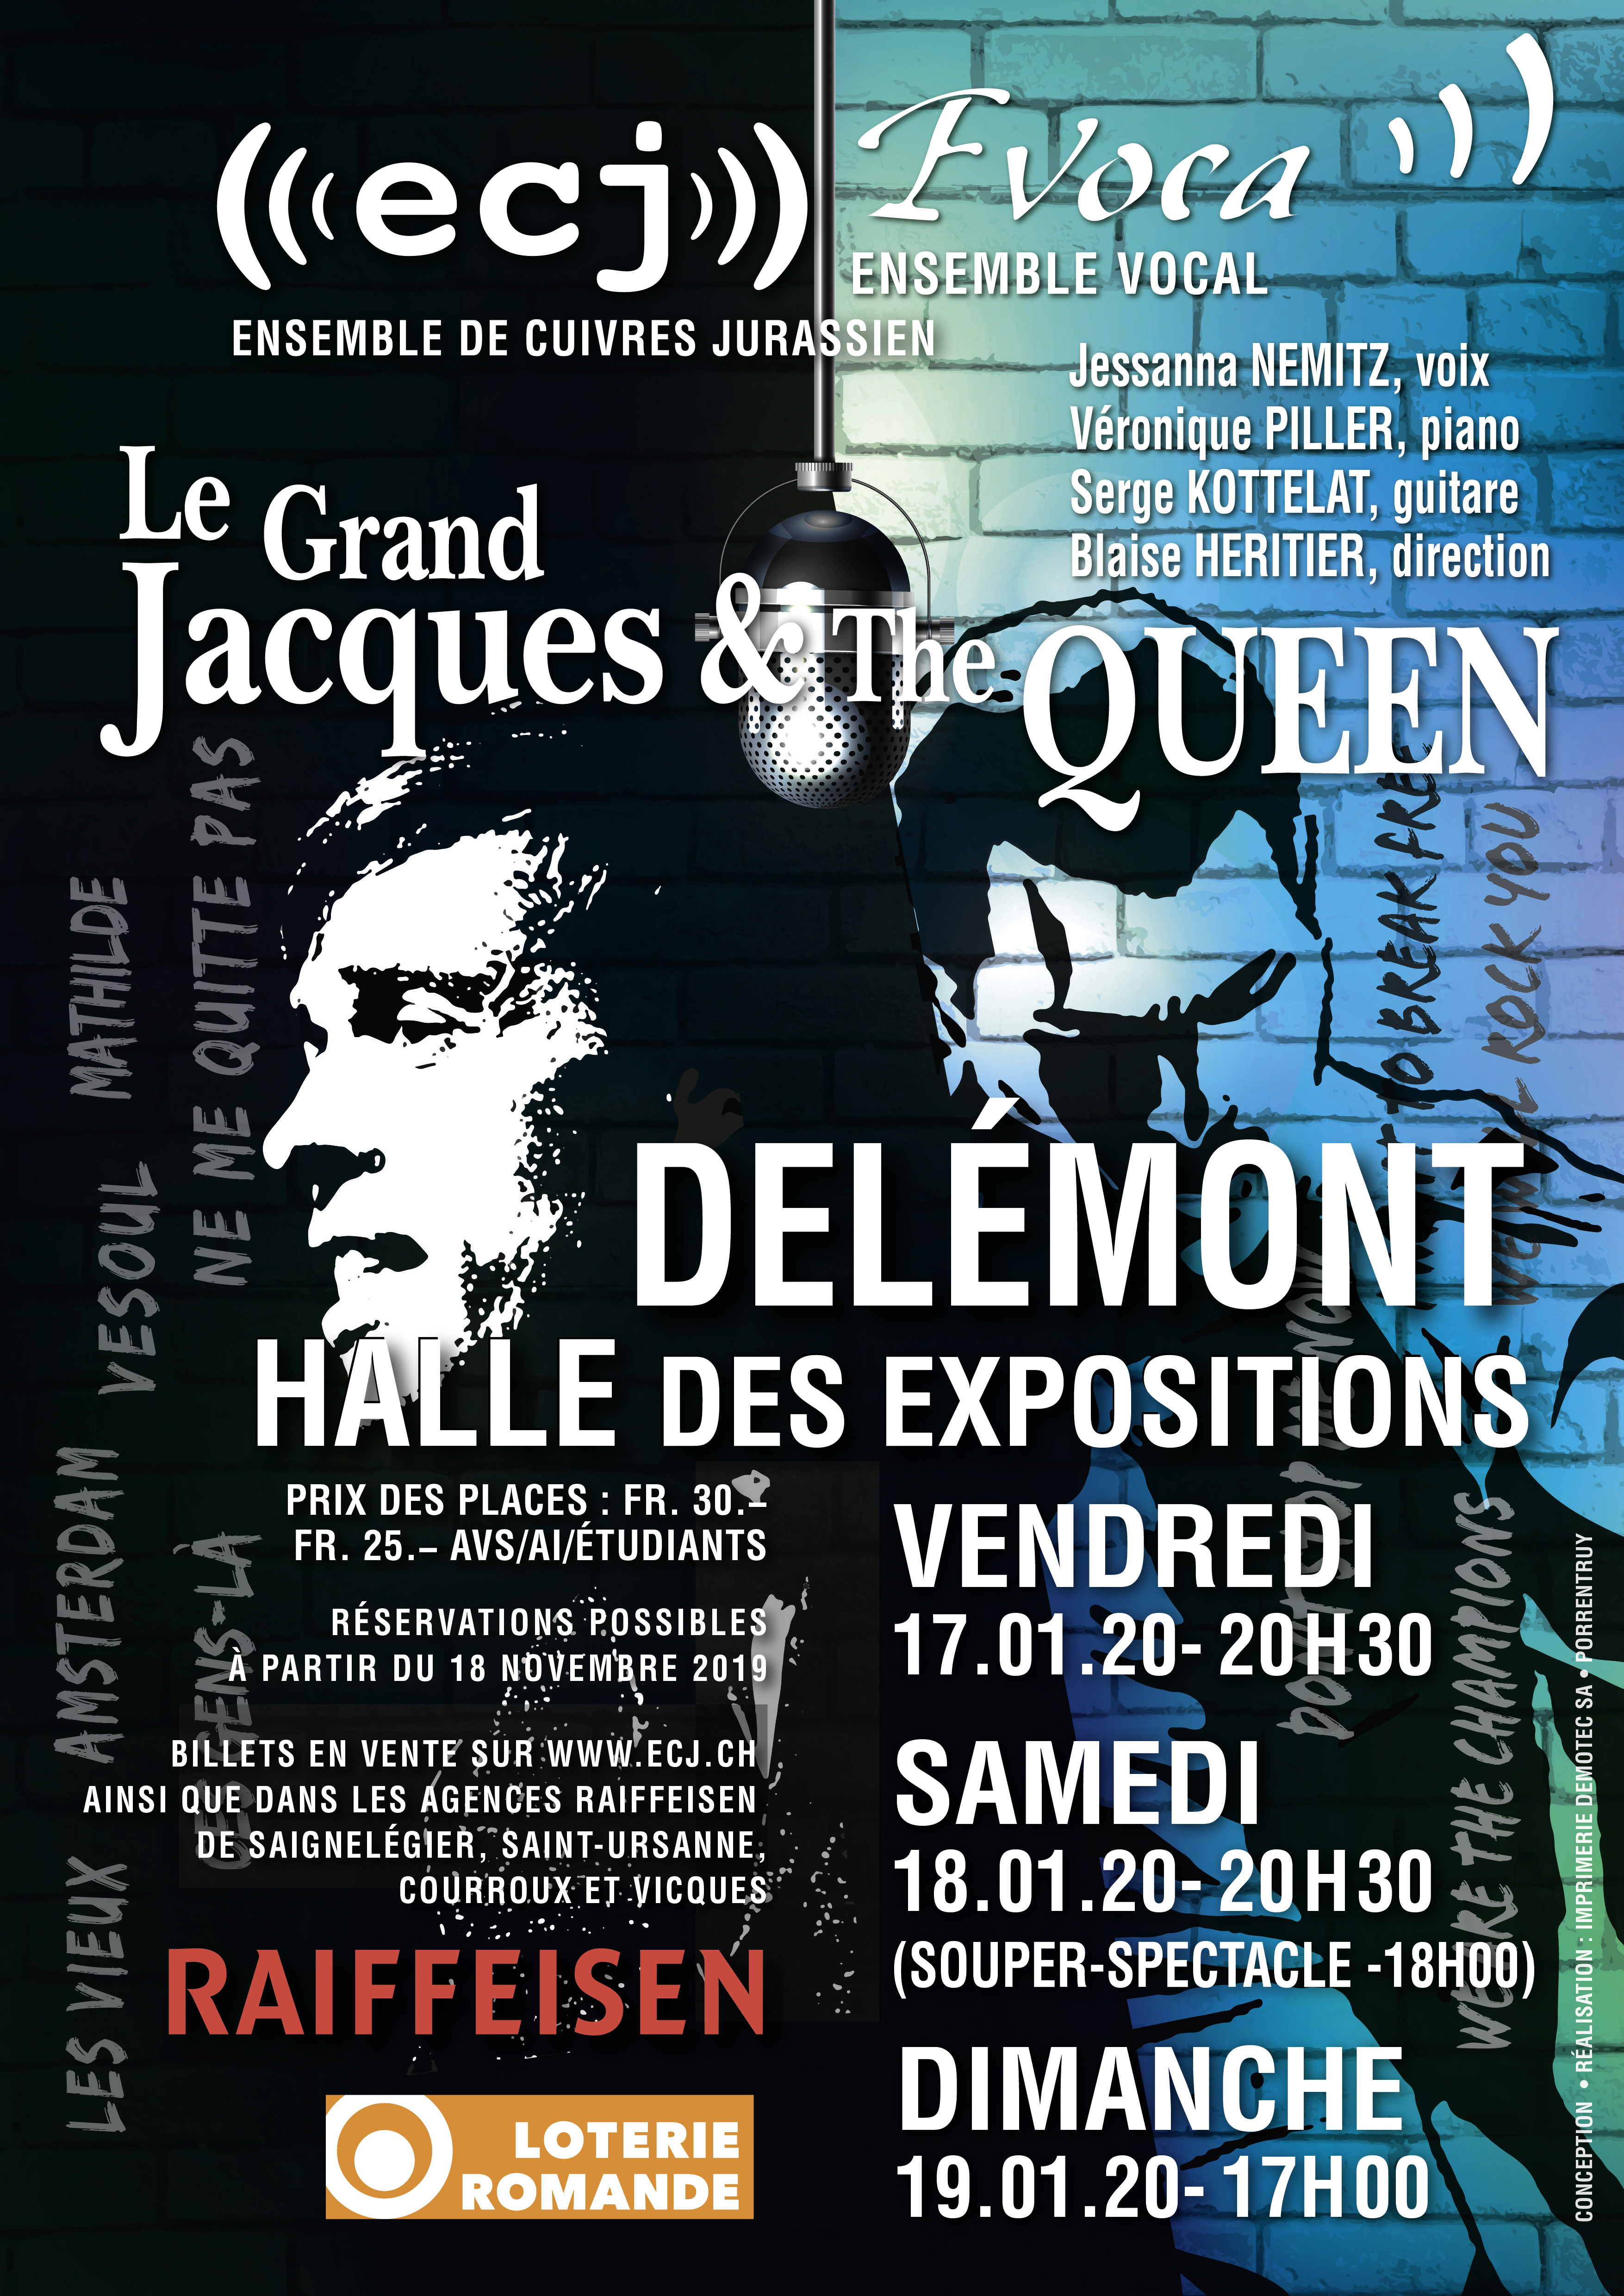 grandjacques queen flyer delemont